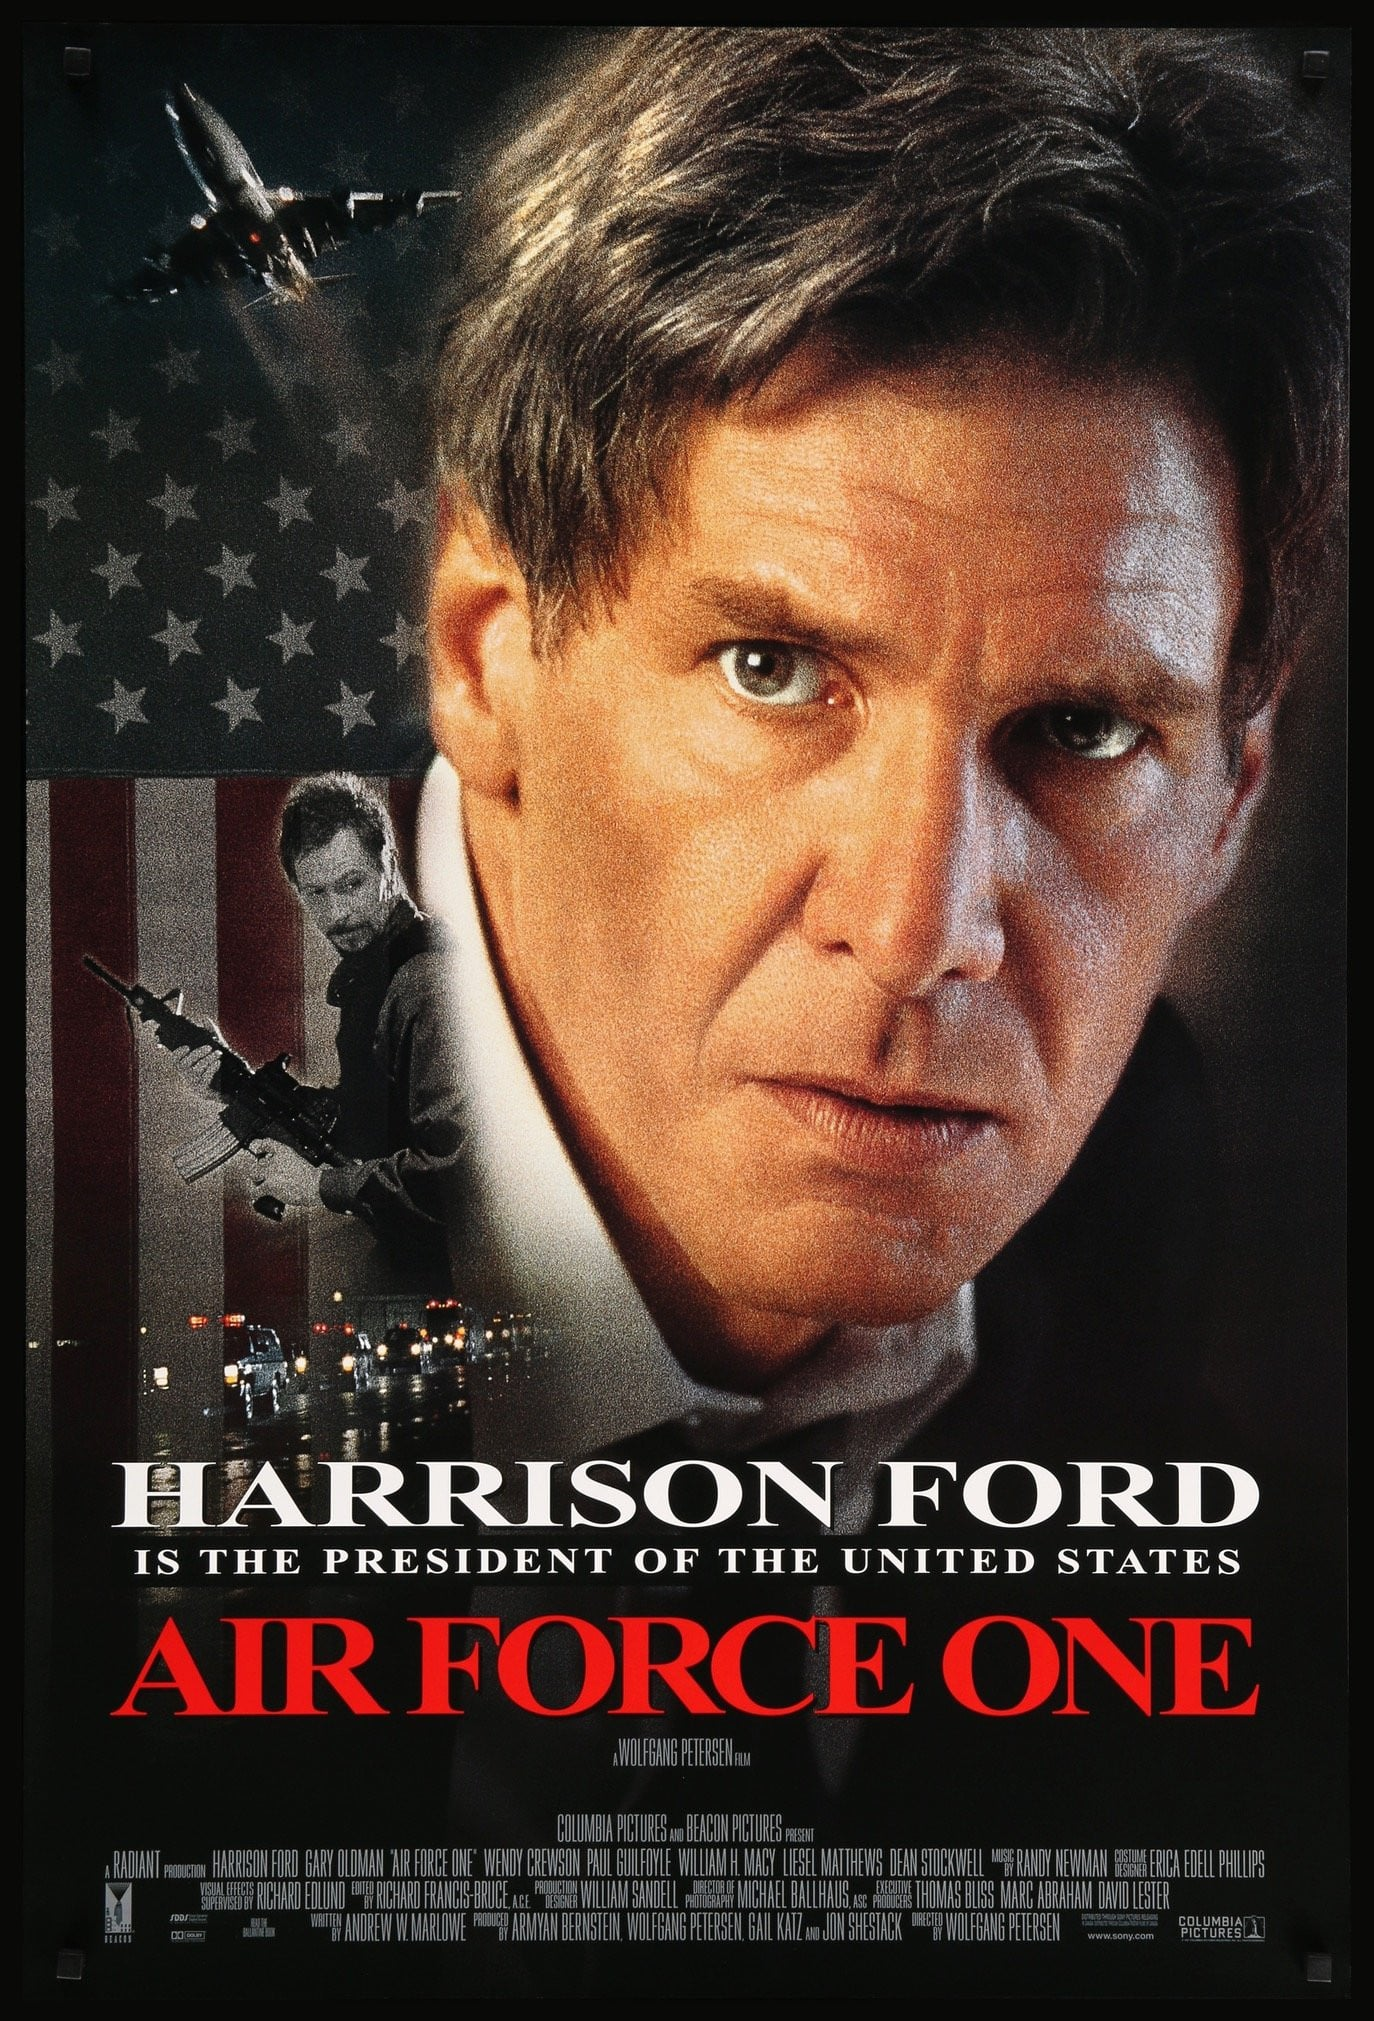 Air Force One (Film)